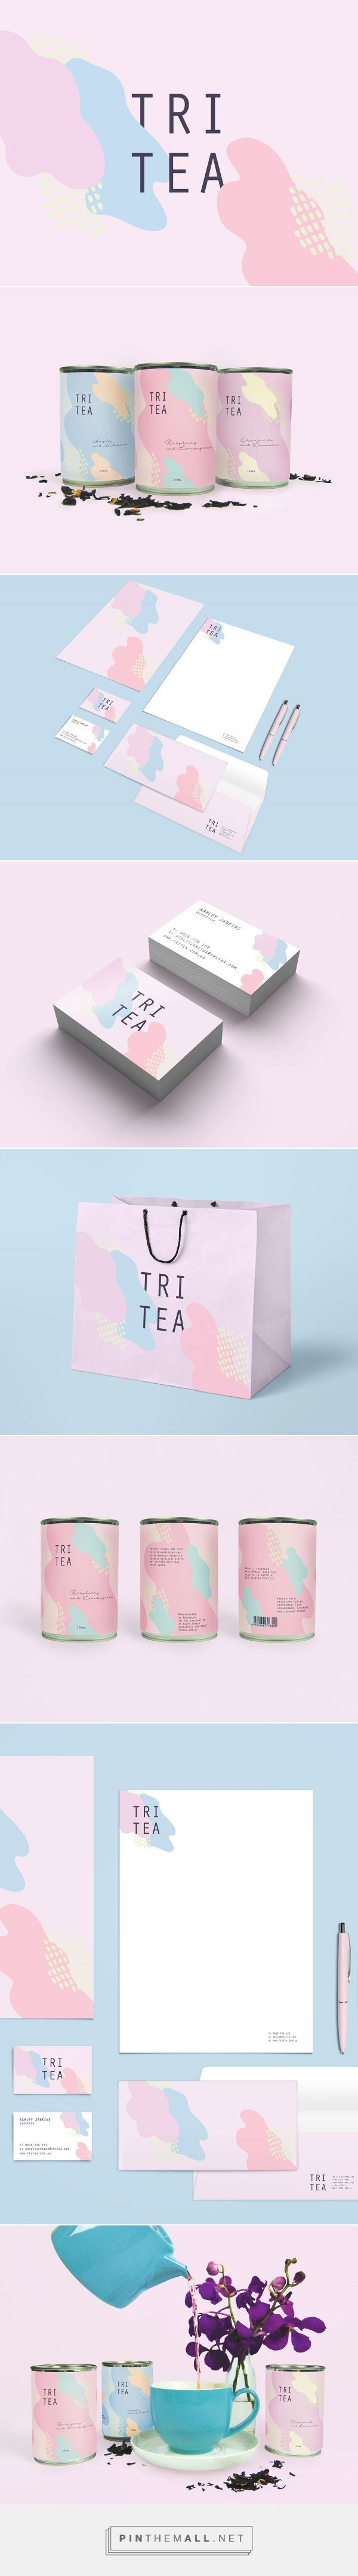 Tri Tea Branding and Packaging by Nasia Syrakis   Fivestar Branding Agency – Design and Branding Agency & Curated Inspiration Gallery